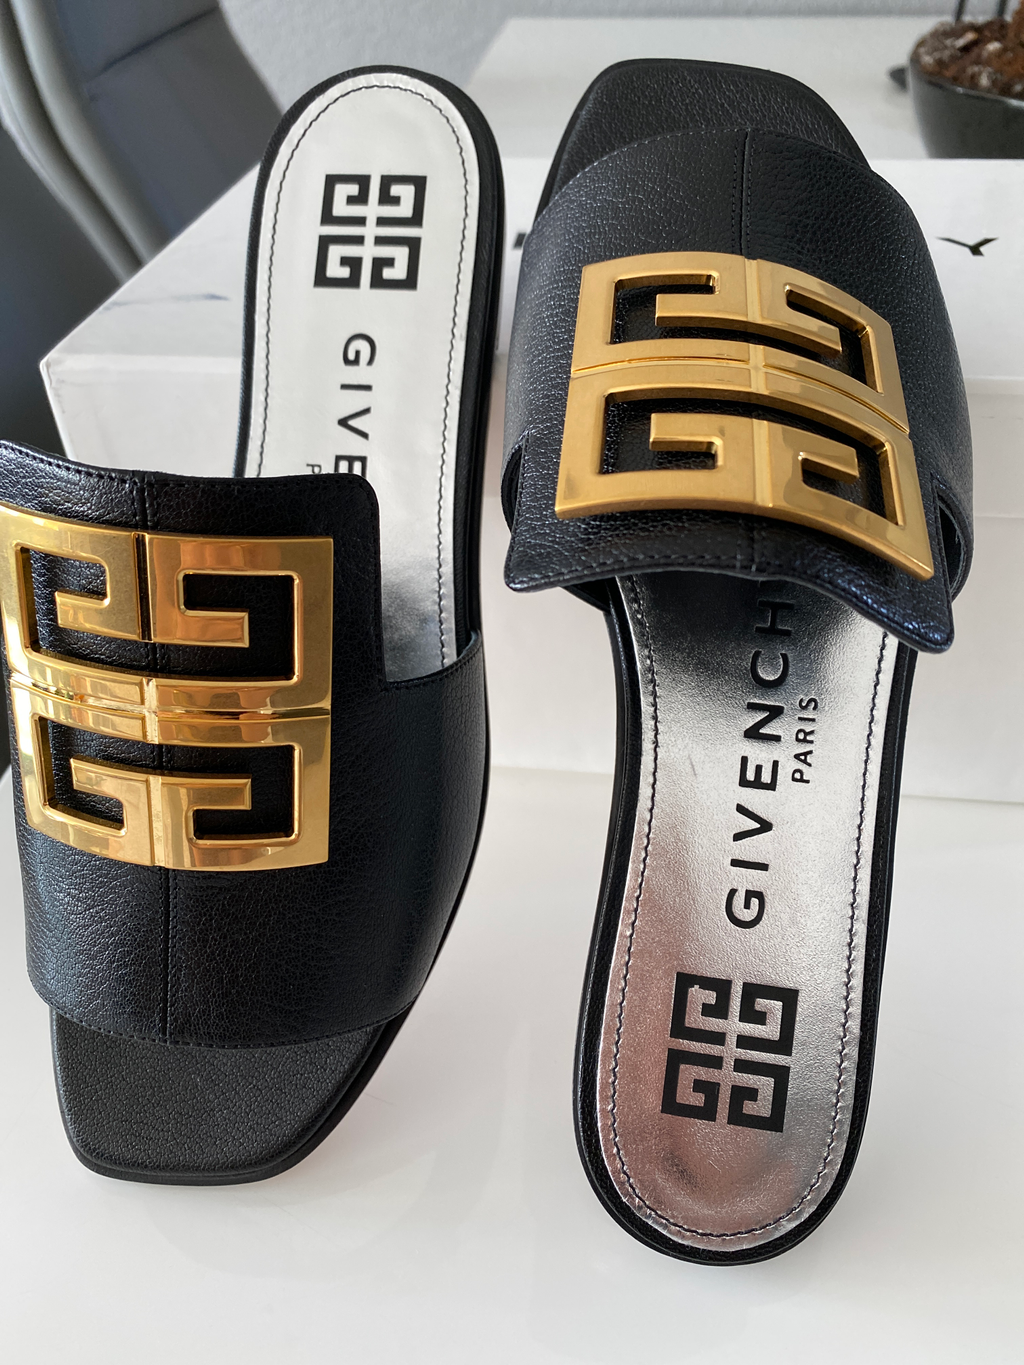 4G Sandals Grained Leather Black